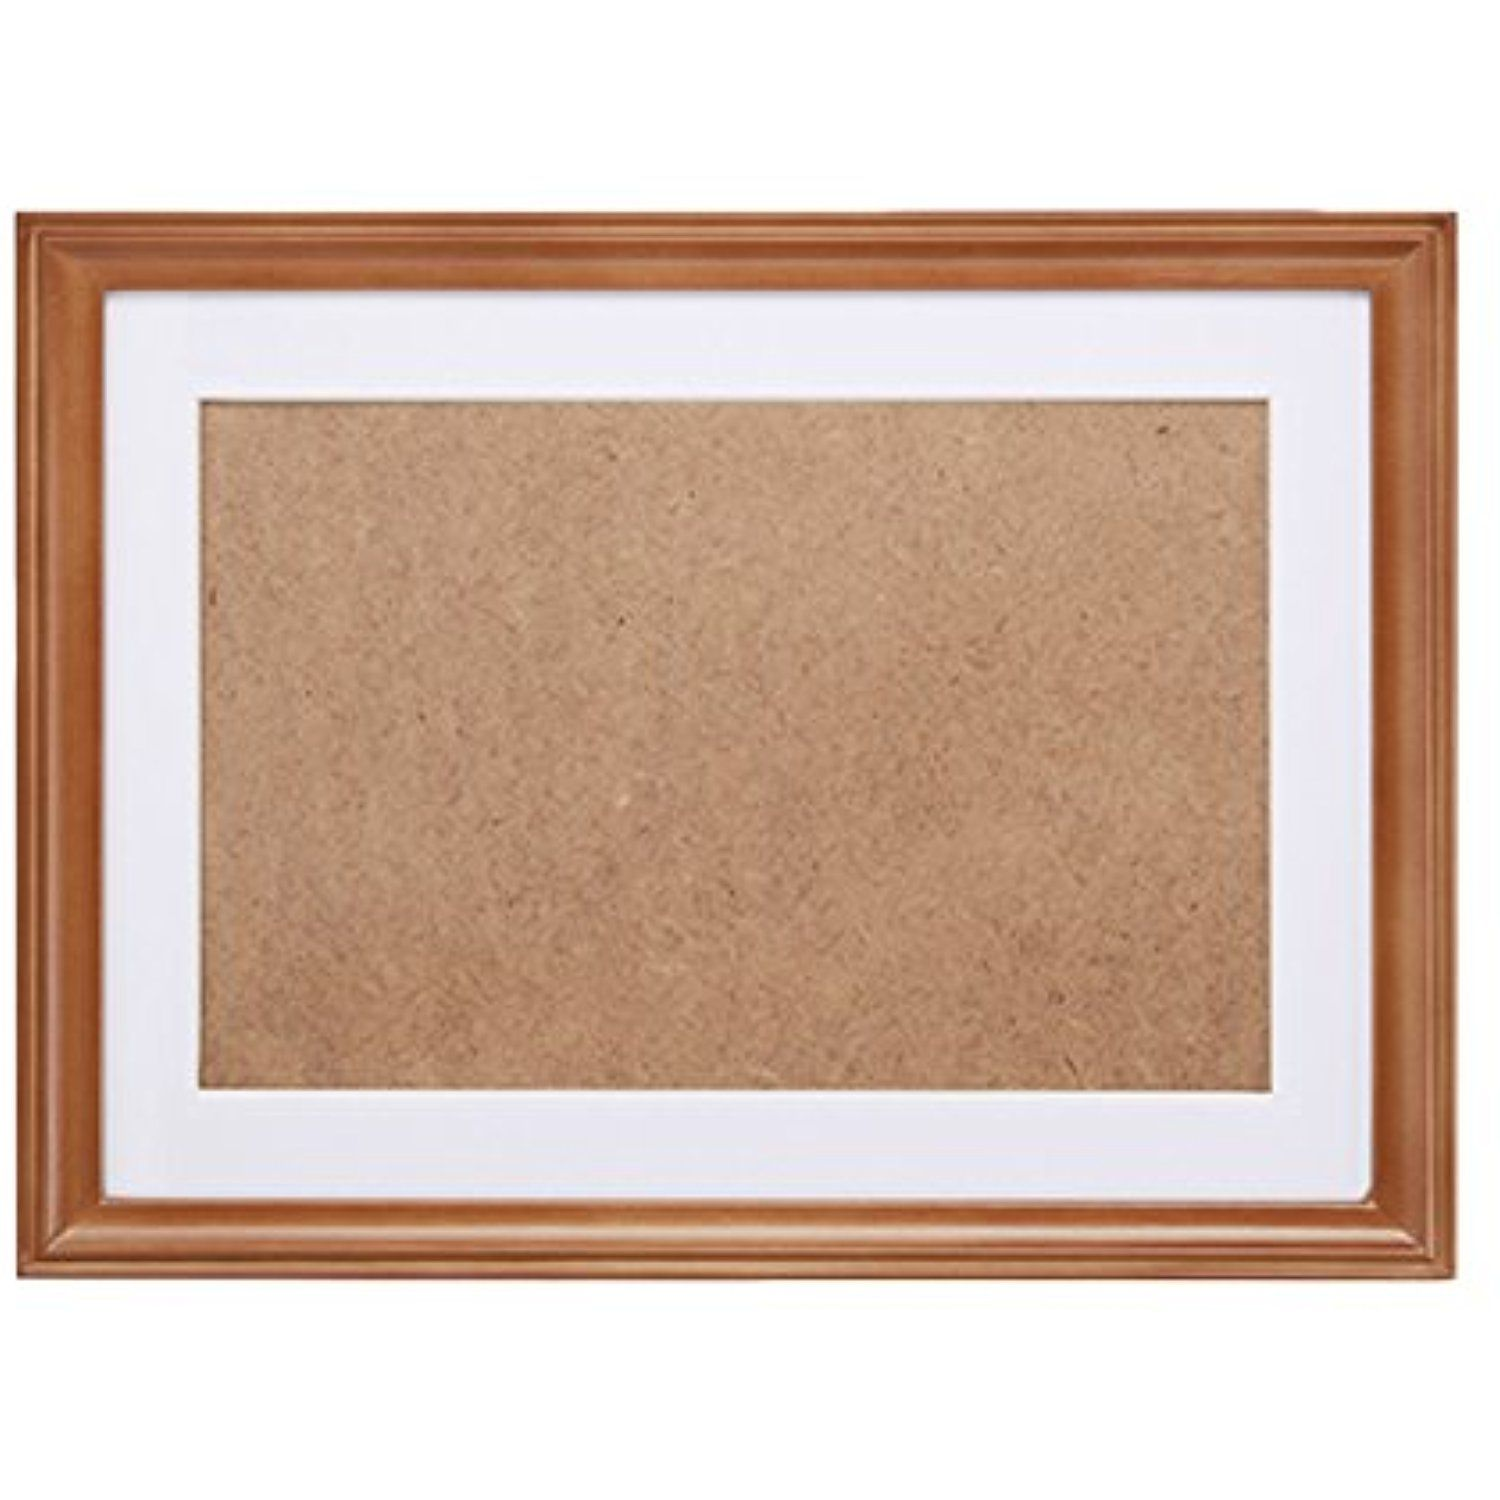 Fastnova 13x19 Inch Narrow Brown Wood Picture Frames Made To Display Picture 10x14 With Mat Or 12x18 Witho Wood Picture Frames Picture Mounting Picture Display